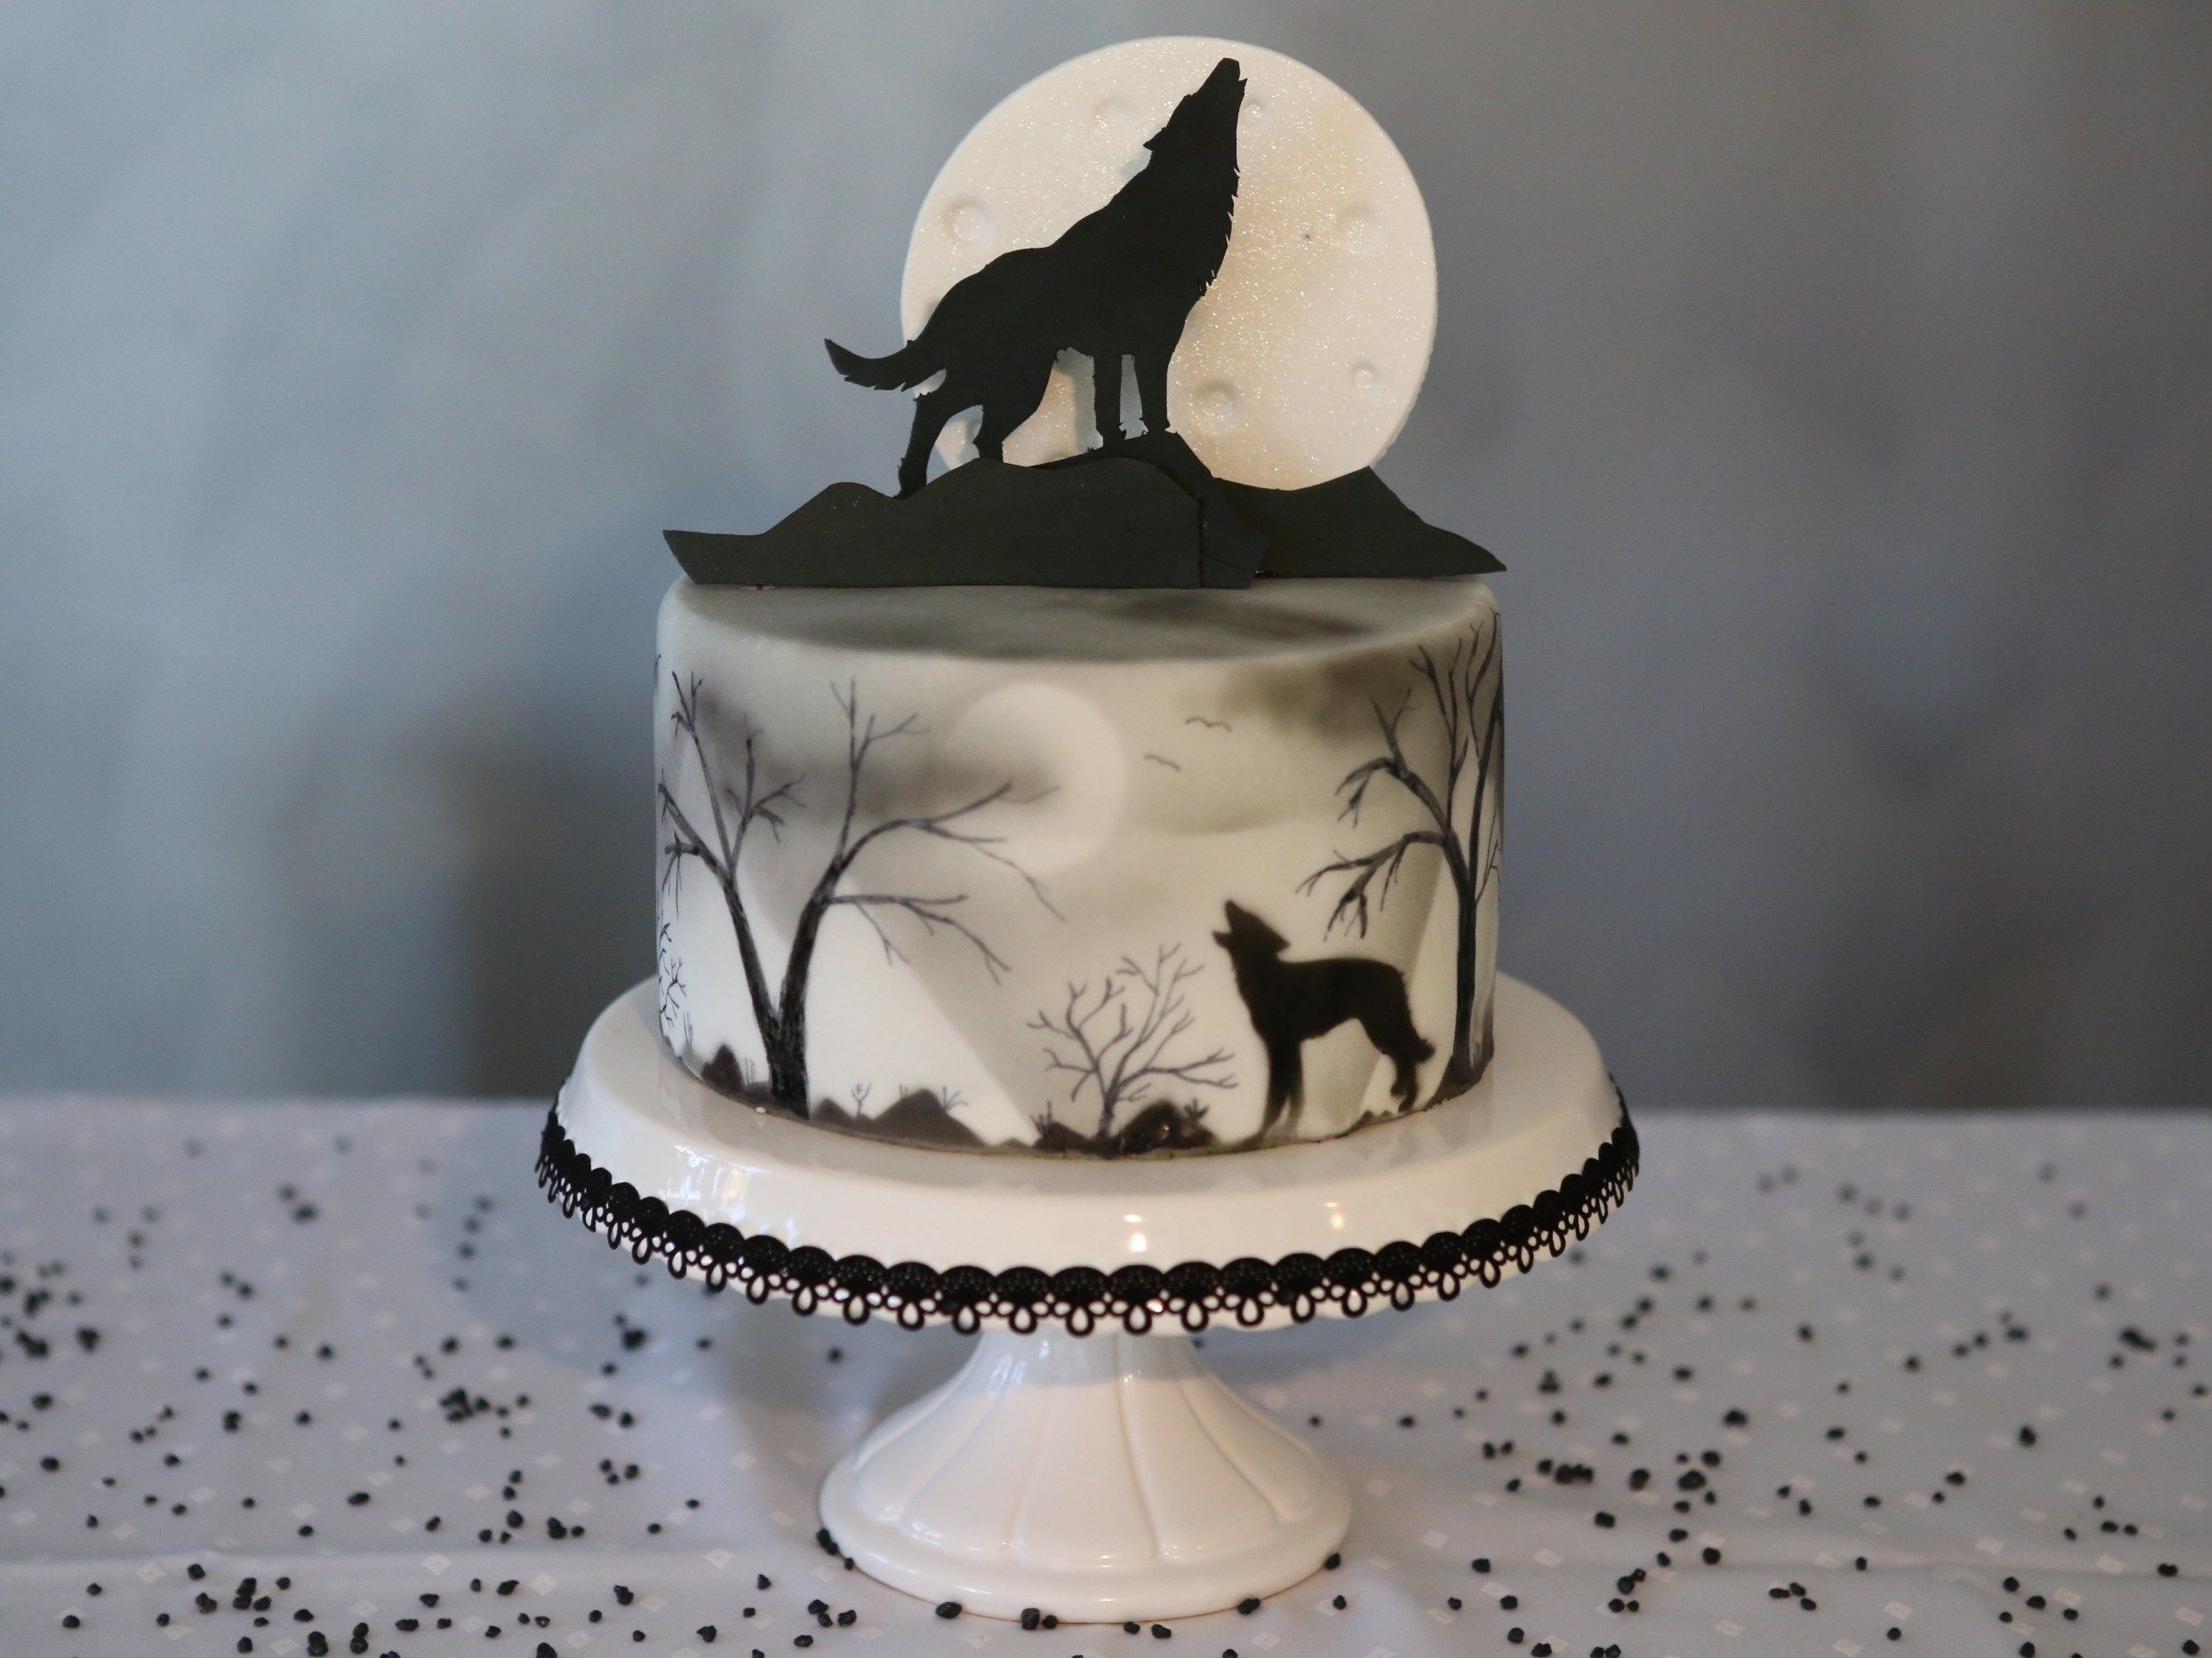 Cake Topper With A Wolf On It